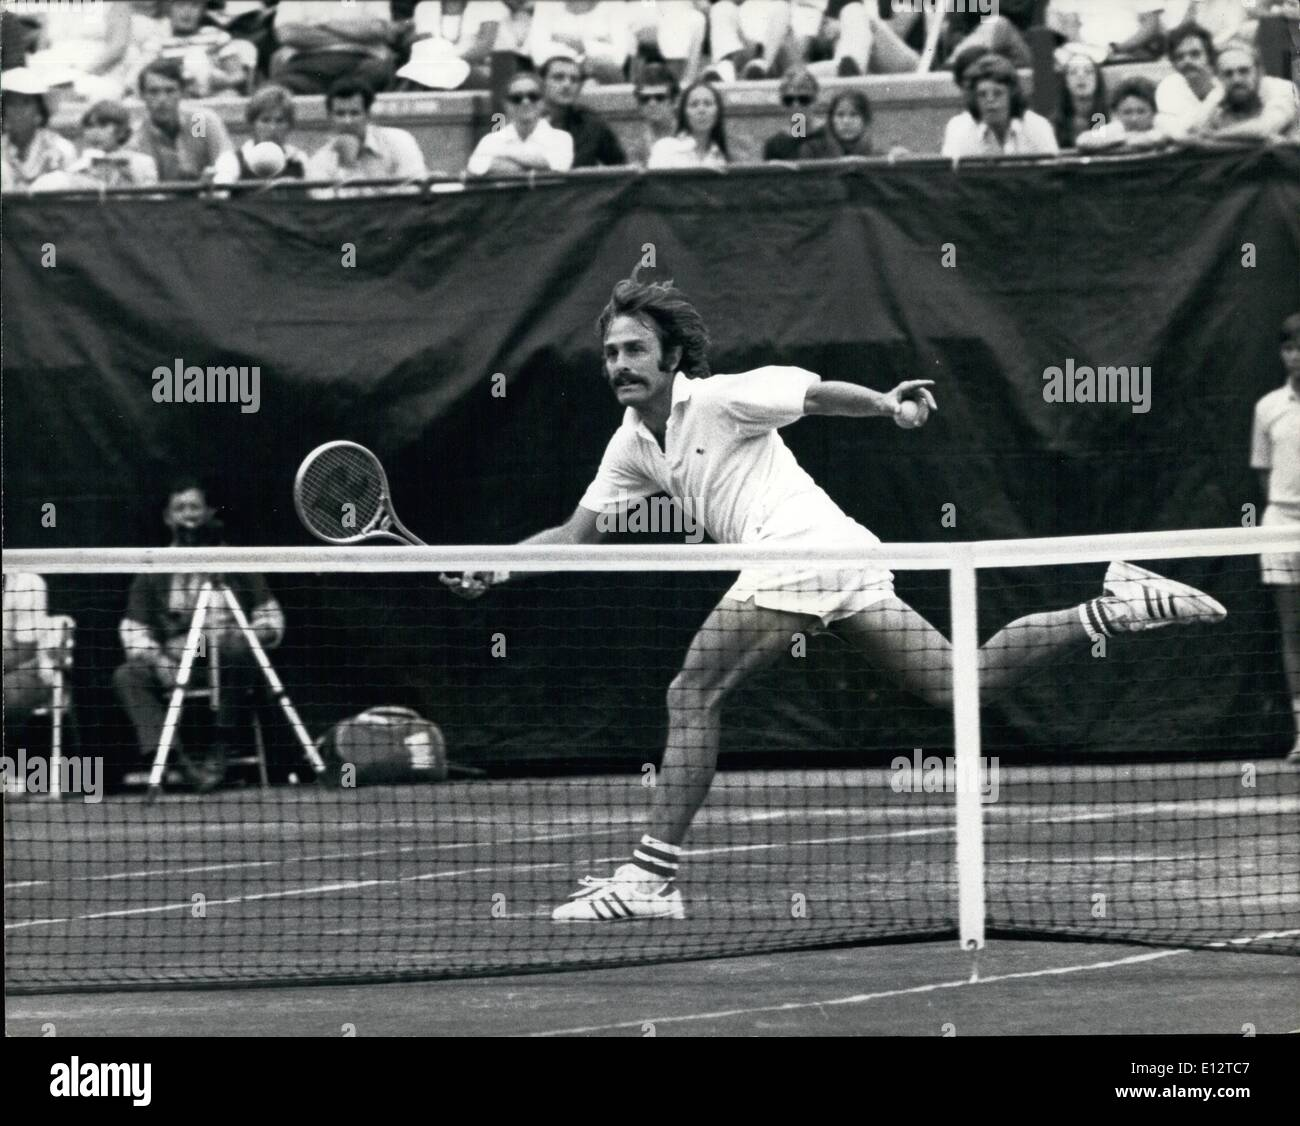 Feb. 24, 2012 - John Newcombe, US Open Men's SIngles Champion - Stock Image